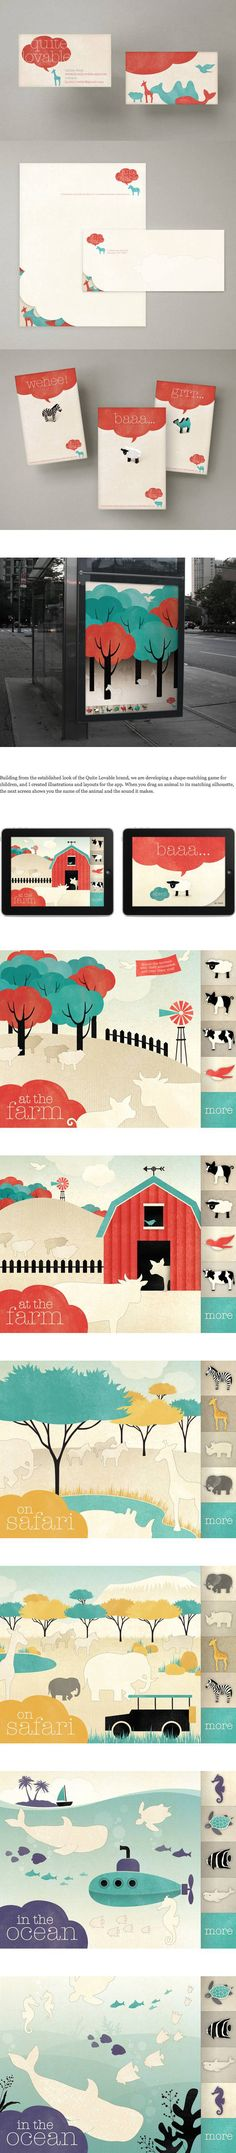 Let& all go down to the farm identity packaging branding PD Brand Identity Design, Graphic Design Branding, Corporate Design, Packaging Design, Typography Design, Corporate Identity, Visual Identity, Design Corporativo, Icon Design